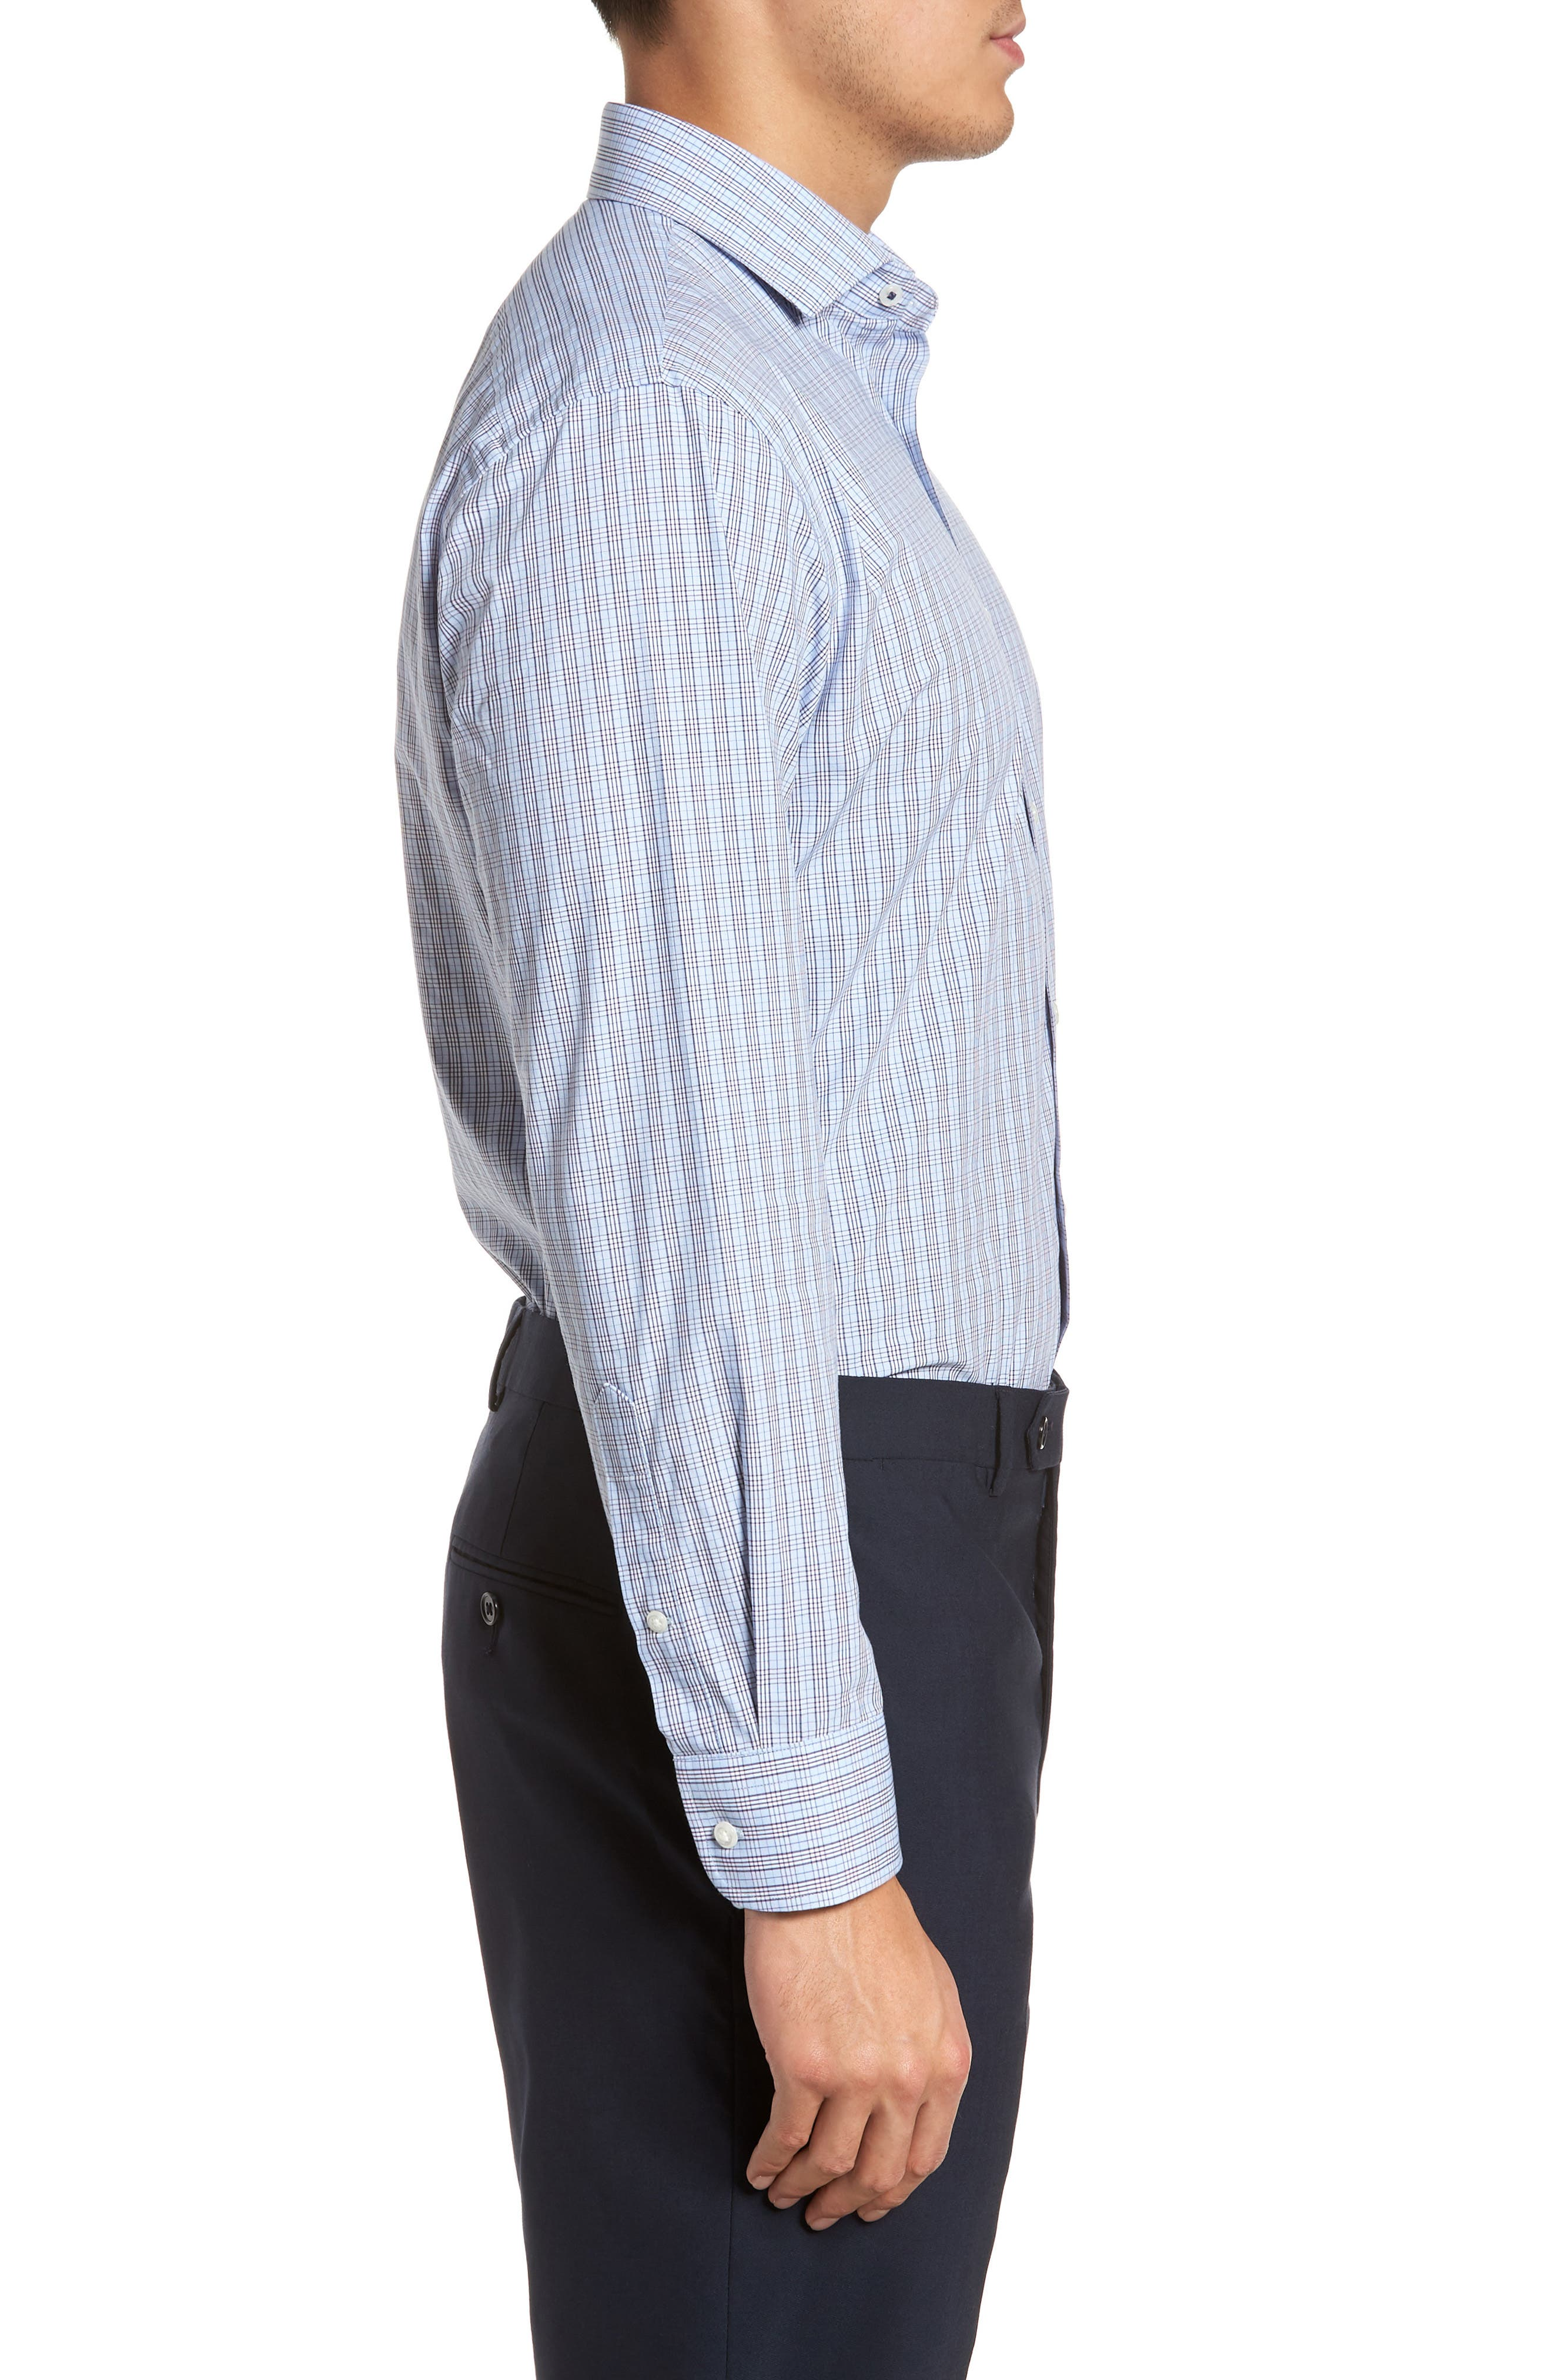 Alternate Image 3  - Nordstrom Men's Shop Tech-Smart Trim Fit Grid Dress Shirt